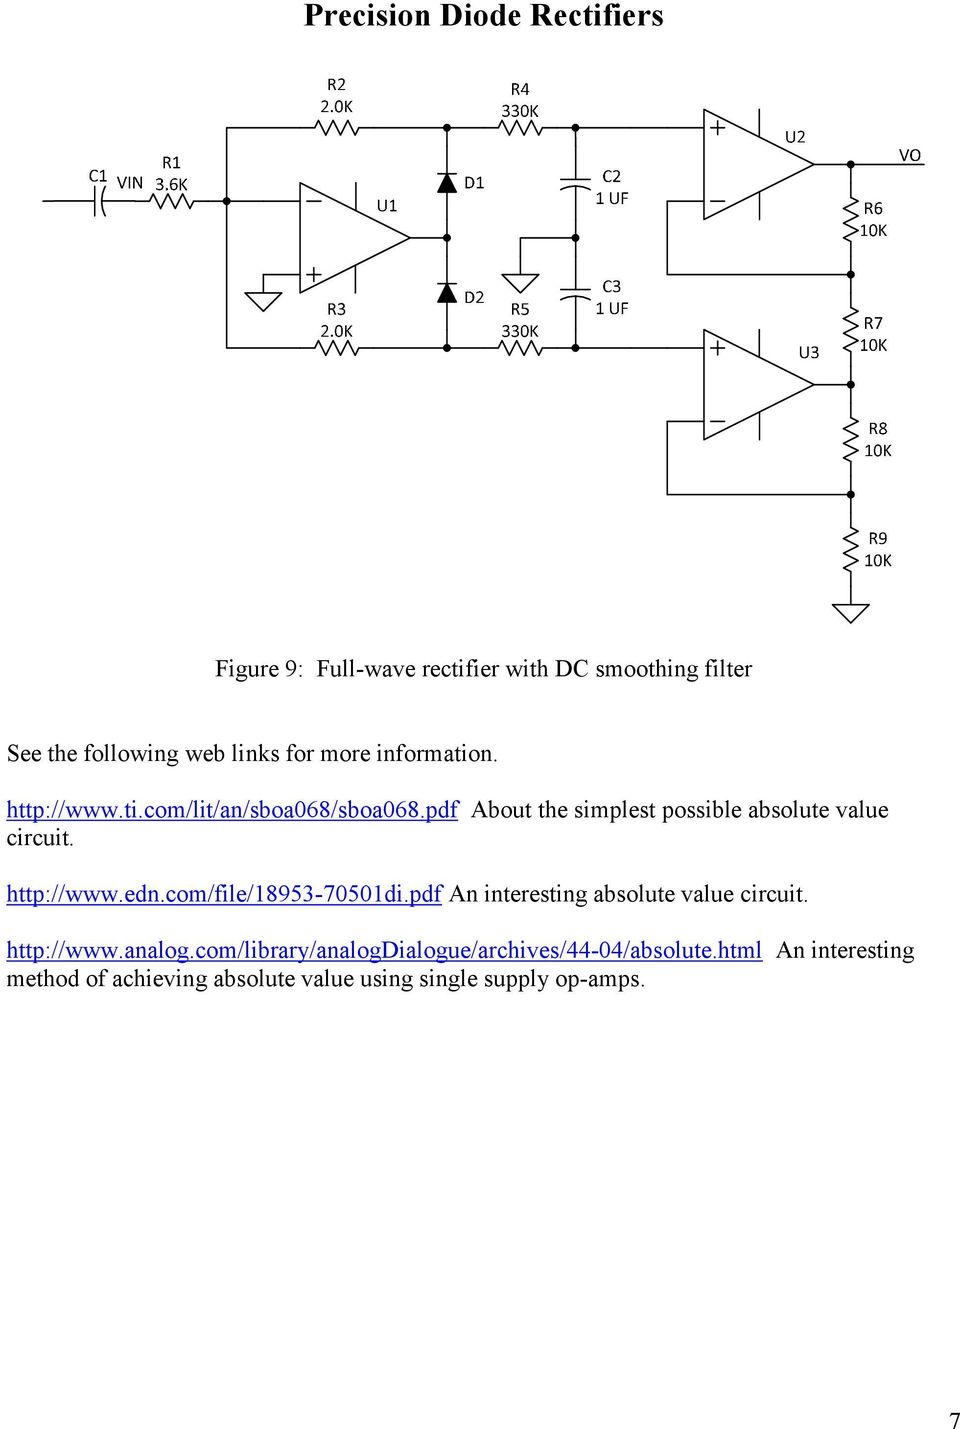 Precision Diode Rectifiers Pdf Full Wave Rectifier Circuit With Averaging Filter Pictures Edncom File 18953 70501dipdf An Interesting Absolute Value